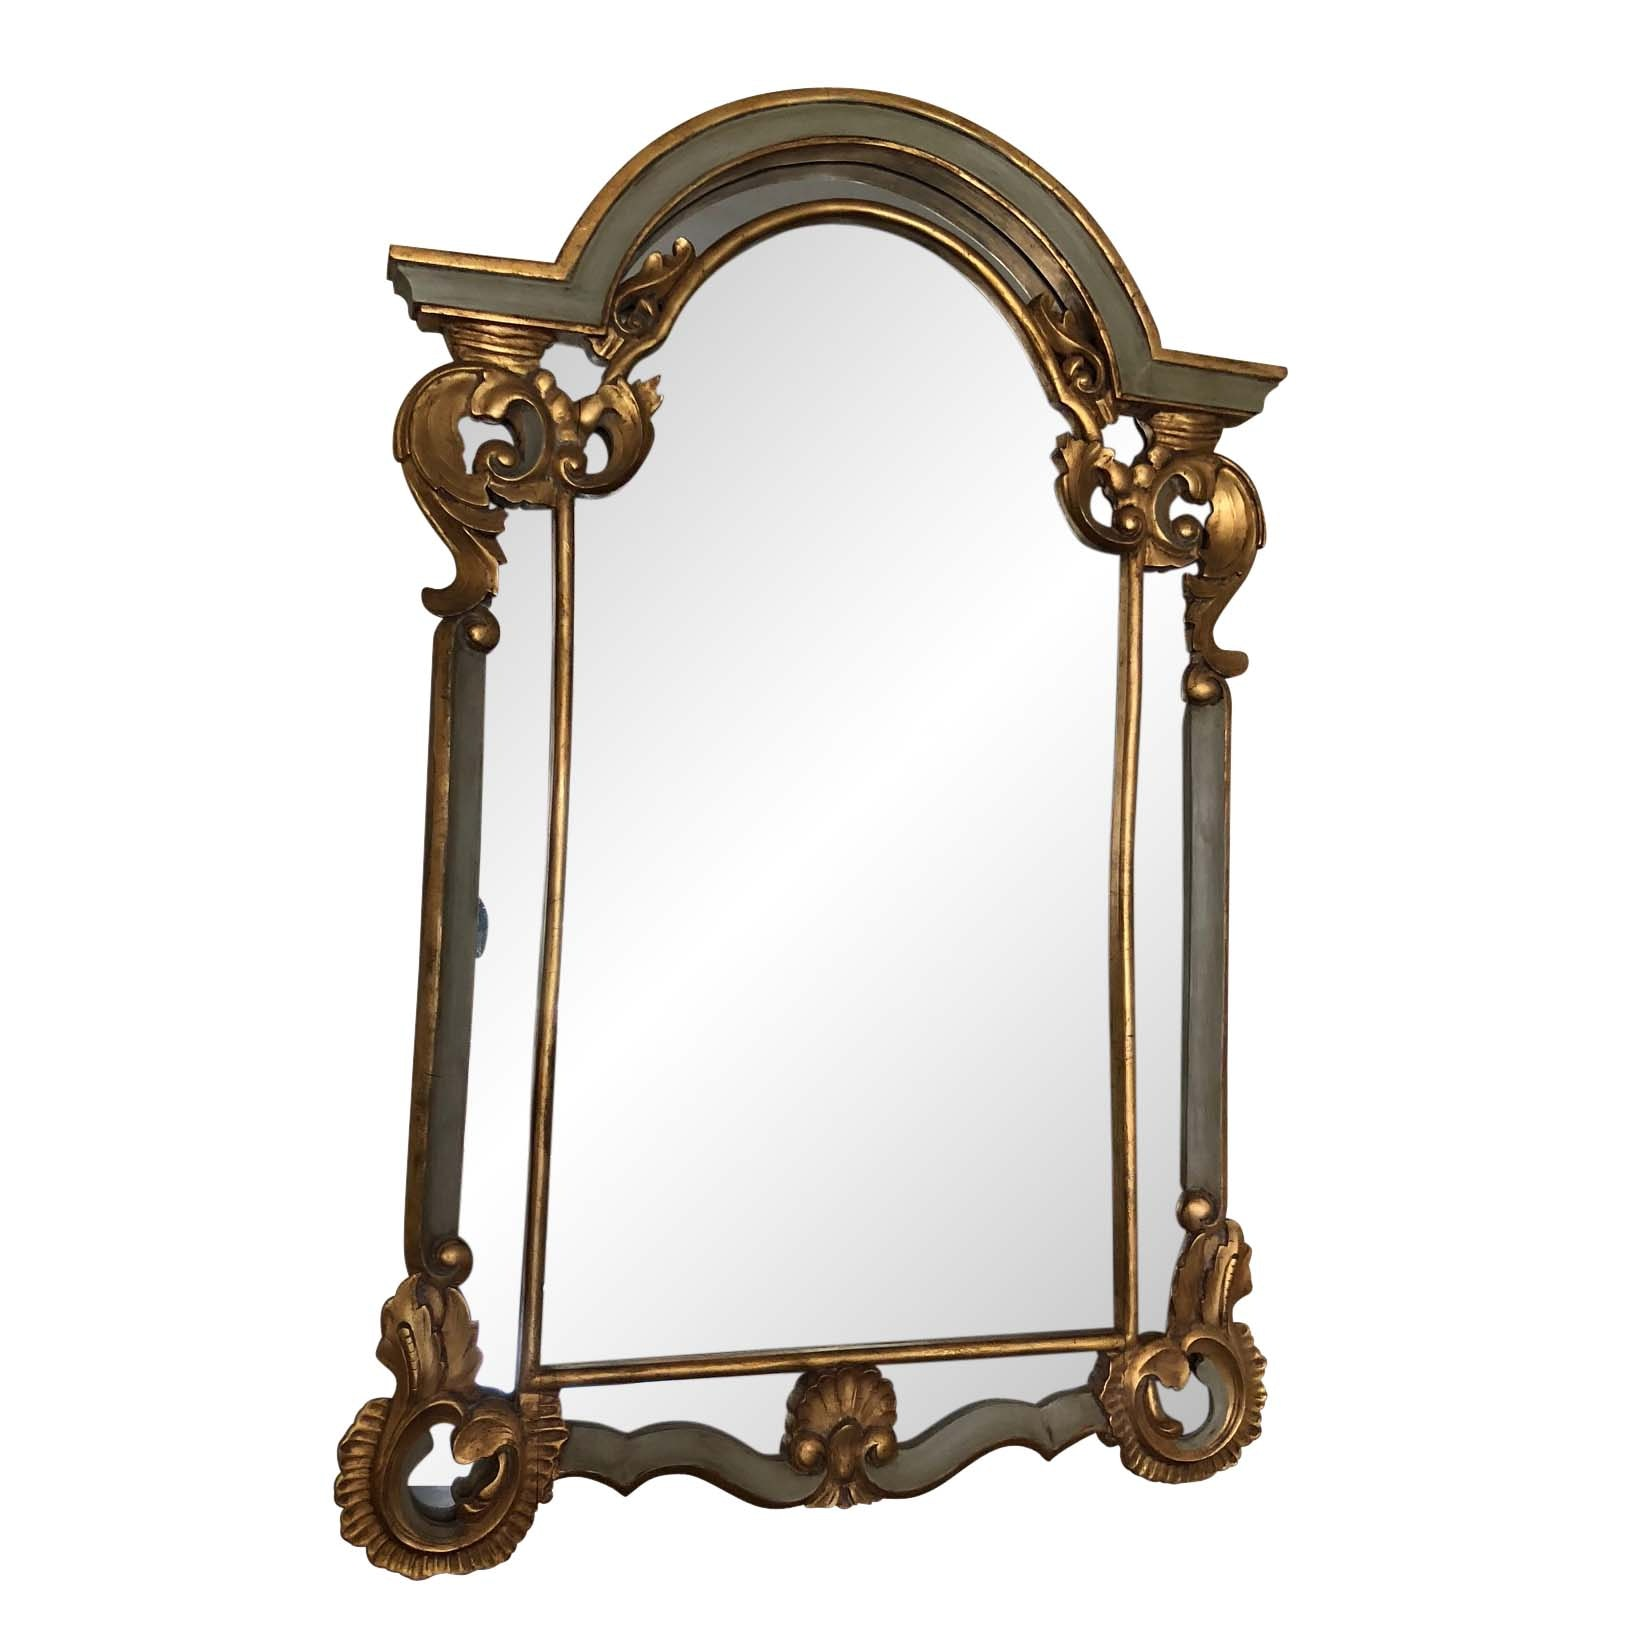 Venetian Style Over-Sized Wall Mirror